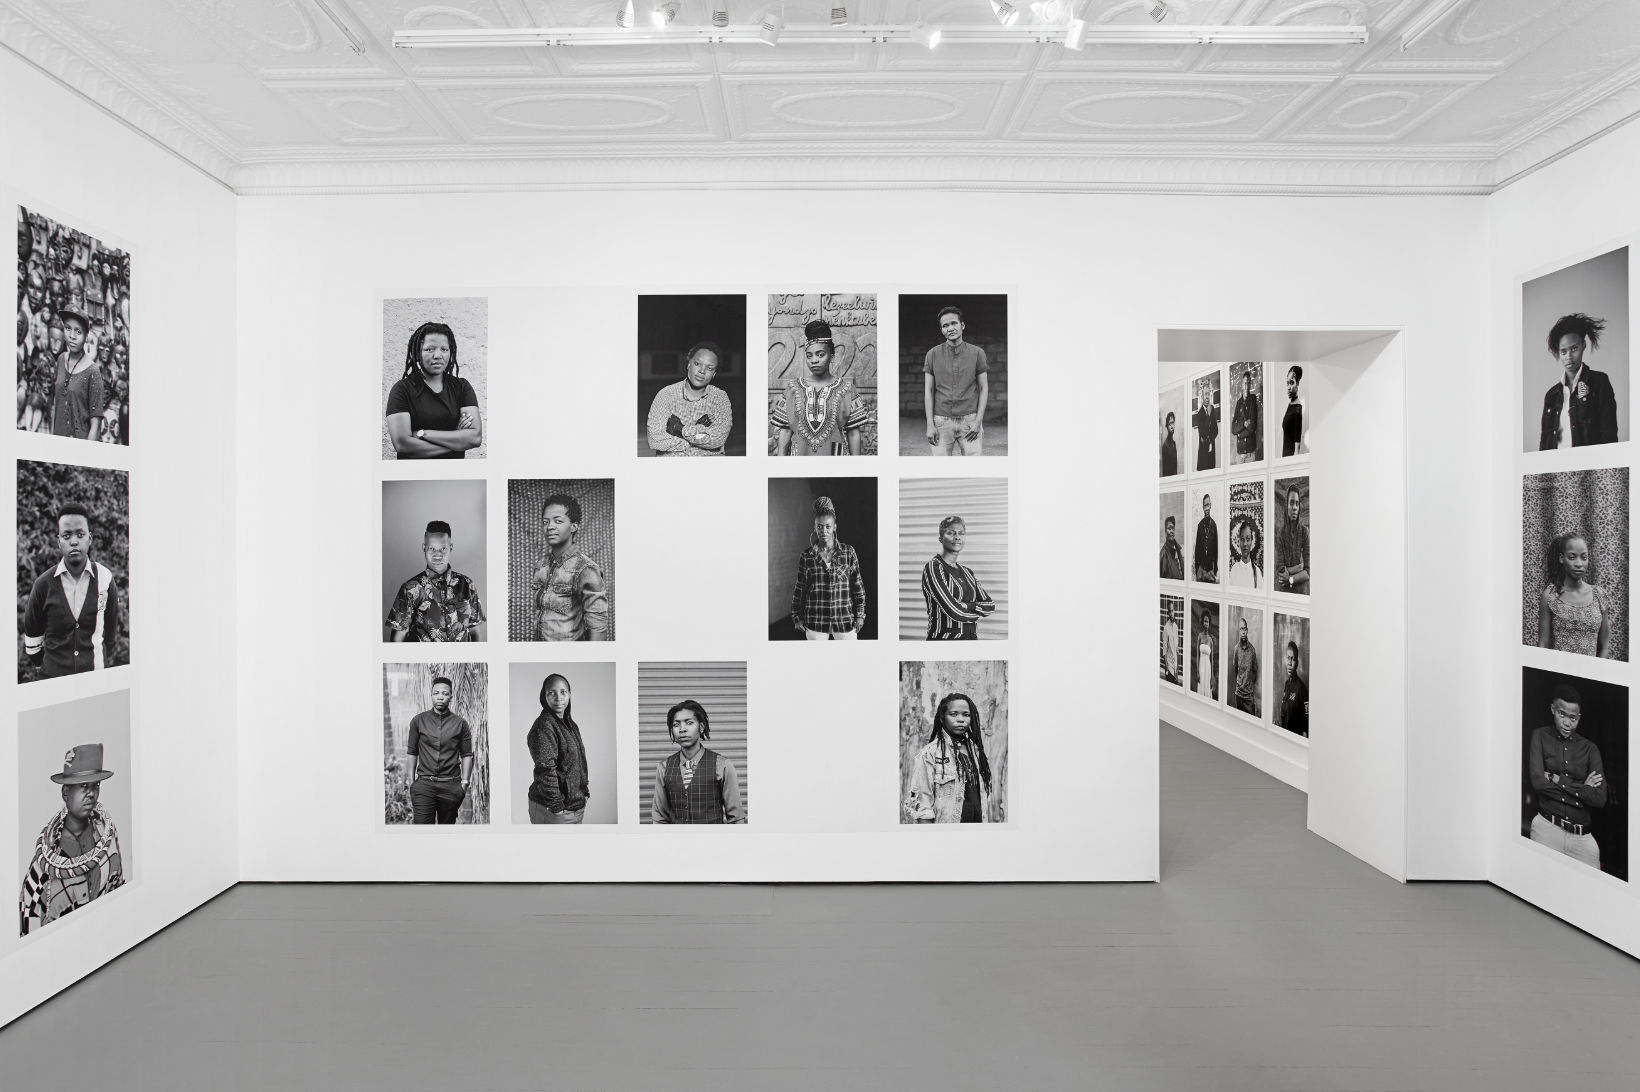 - Zanele Muholi, Faces and Phases 13 | STEVENSON, JohannesburgJuly 20 - August 30, 2019STEVENSON is proud to present Faces and Phases 13 by Zanele Muholi.Founded in 2006 in recognition of a lack of black queer visibility, Muholi's Faces and Phases series has grown into a living archive of black and white photographic portraits of more than 500 lesbians, gender-nonconforming individuals and transmen in various expressions of their sexuality and gender identity.image: installation view, Faces and Phases 13, STEVENSON